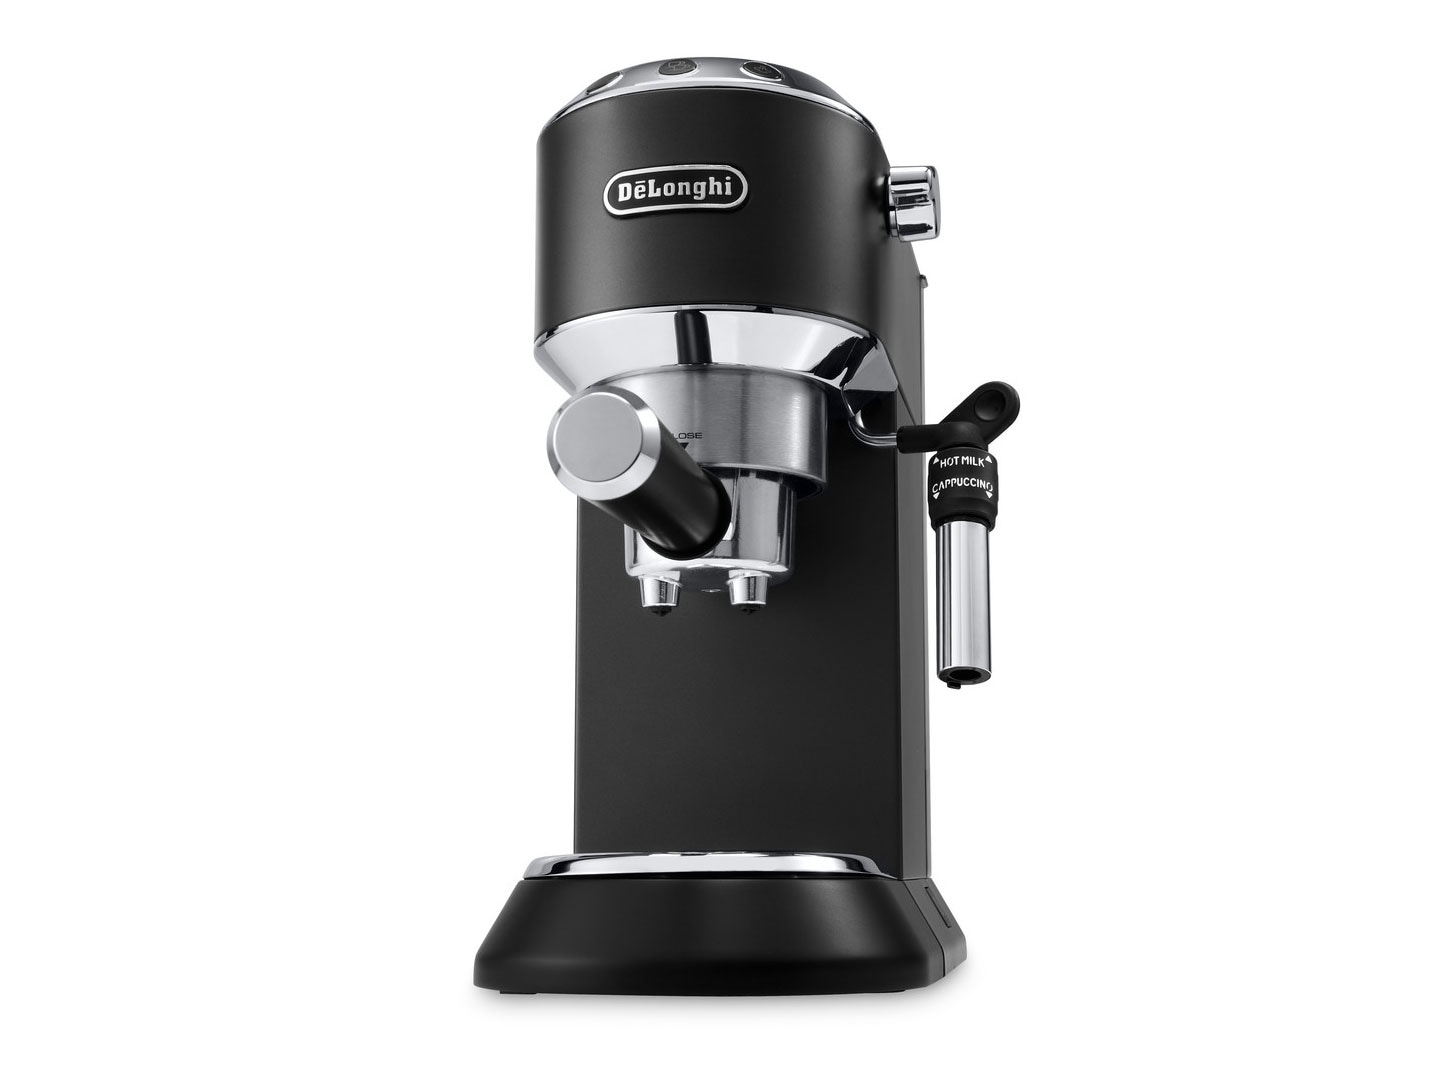 Dedica DeLuxe Manual Espresso Machine, Cappuccino Maker - Black -  - EC685BK